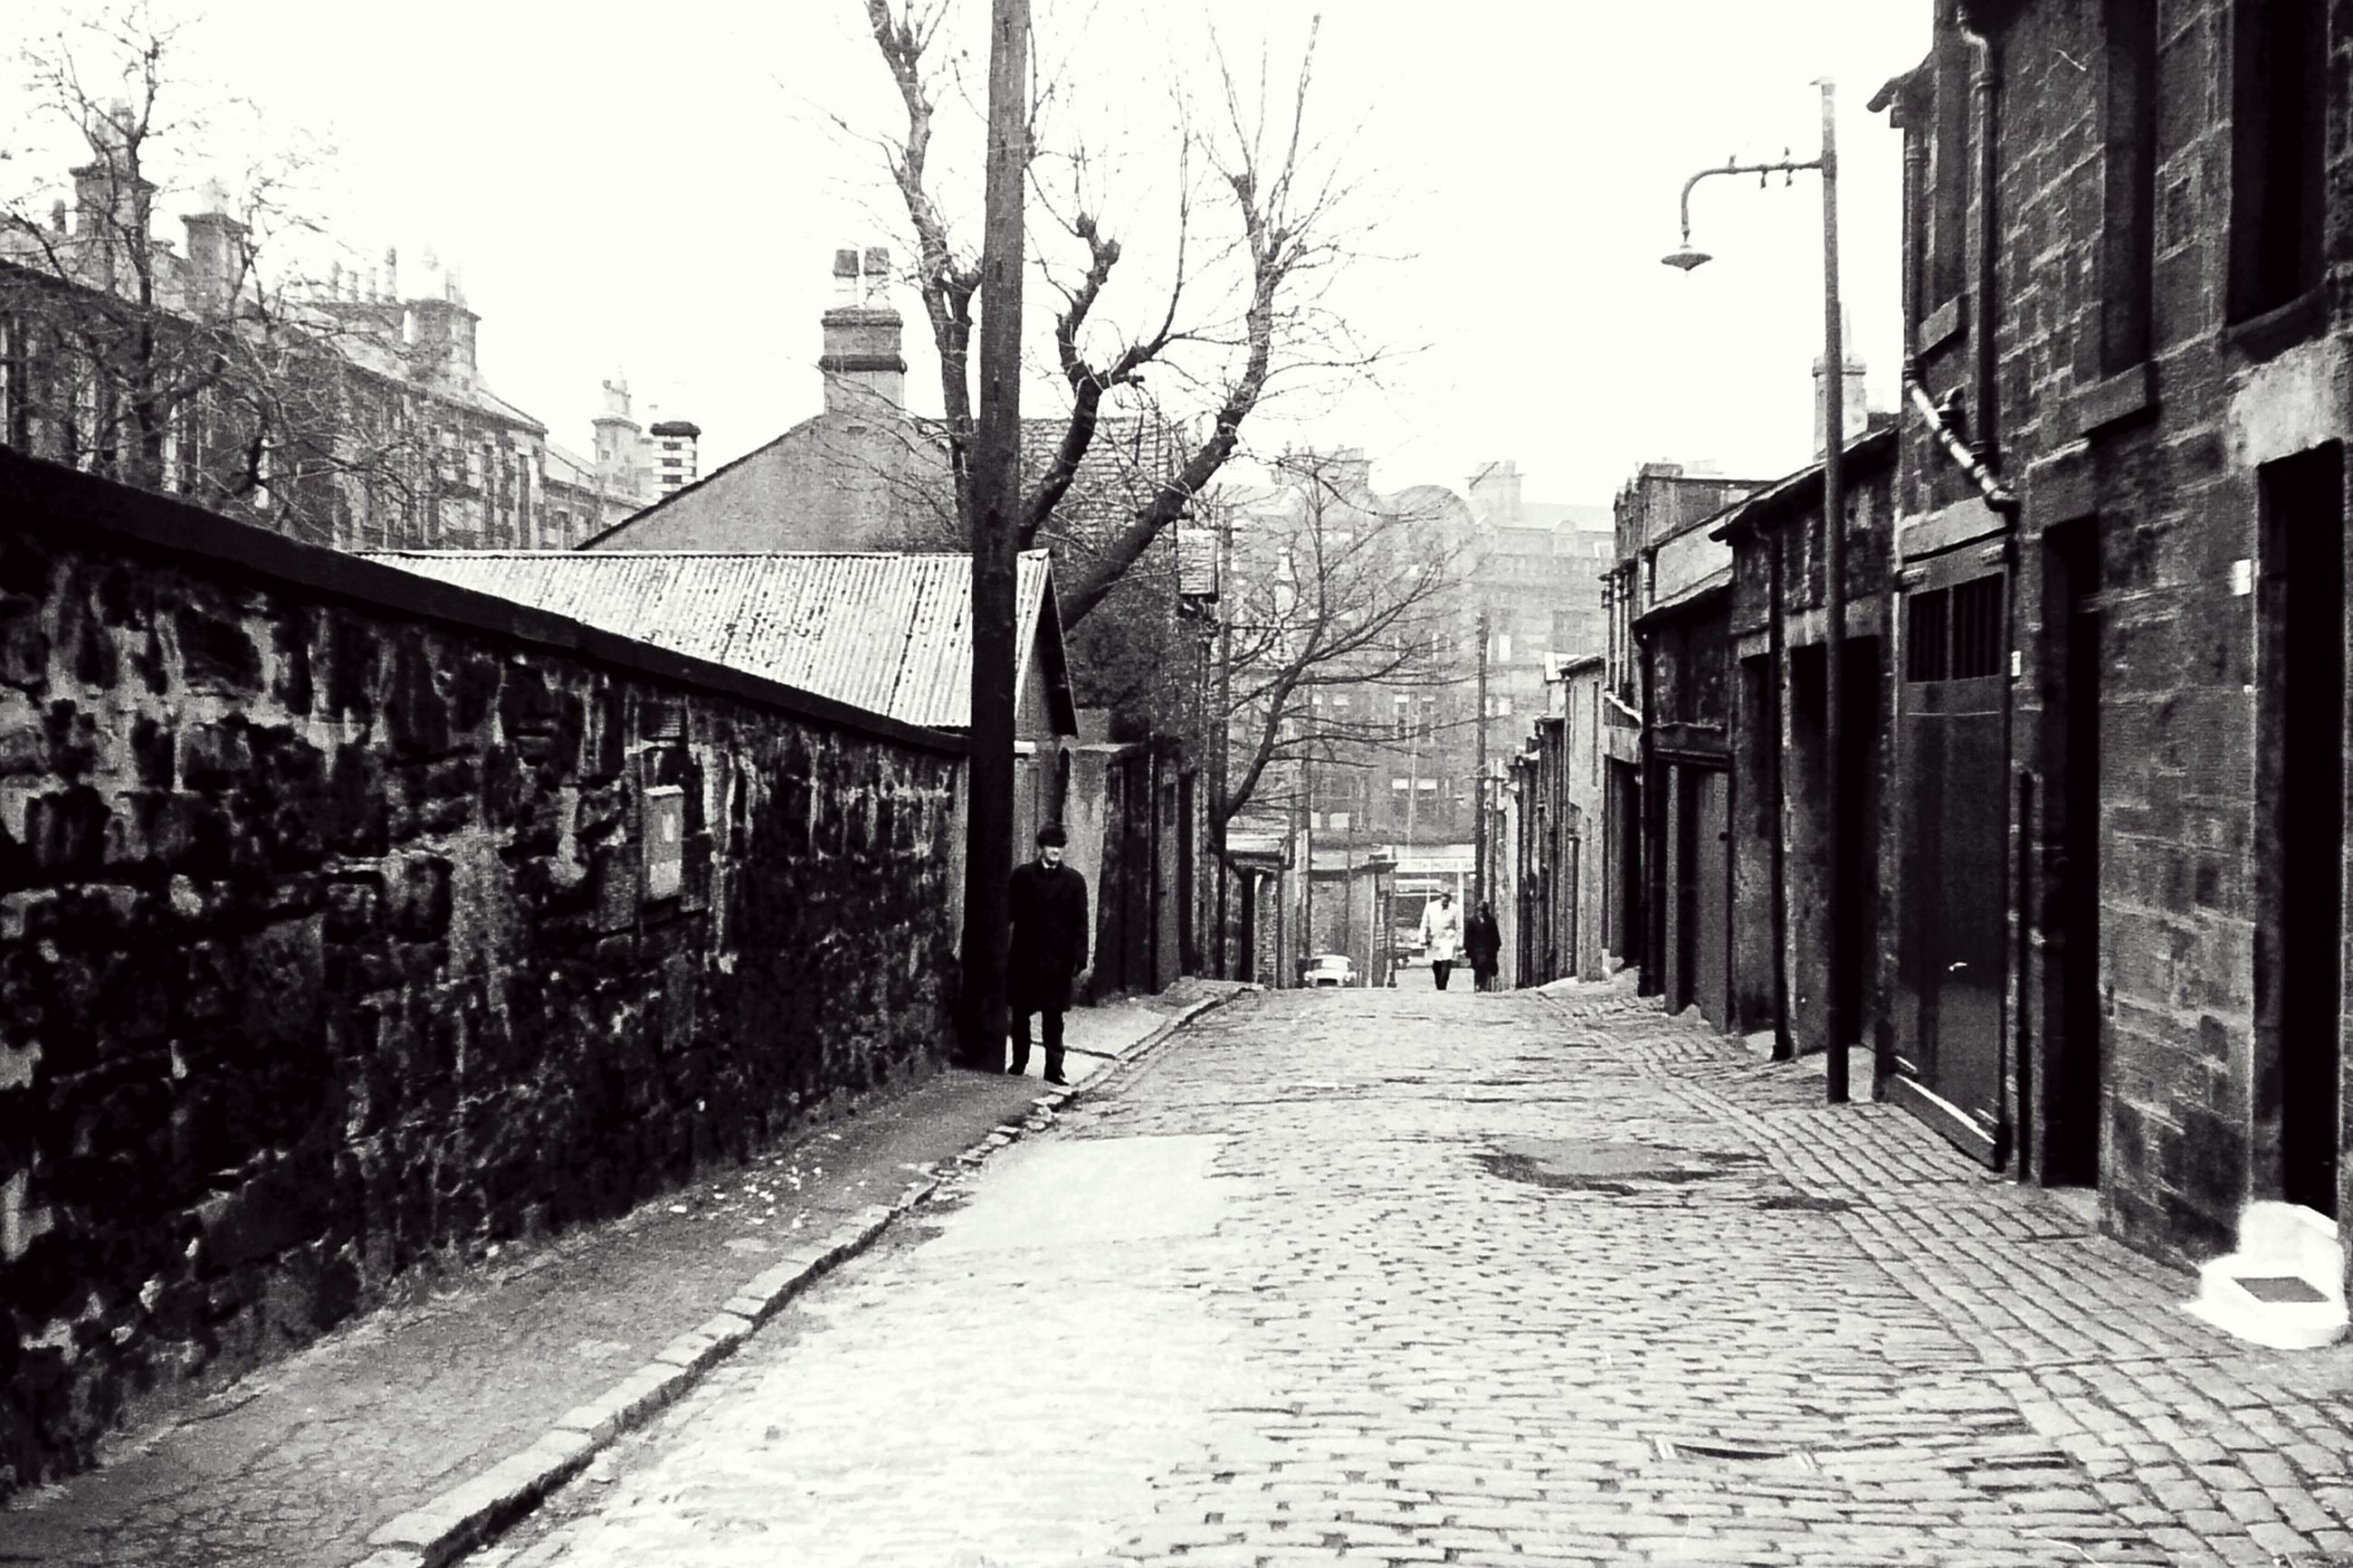 Backstreets & Alleyways leading to Sauchiehall Street near